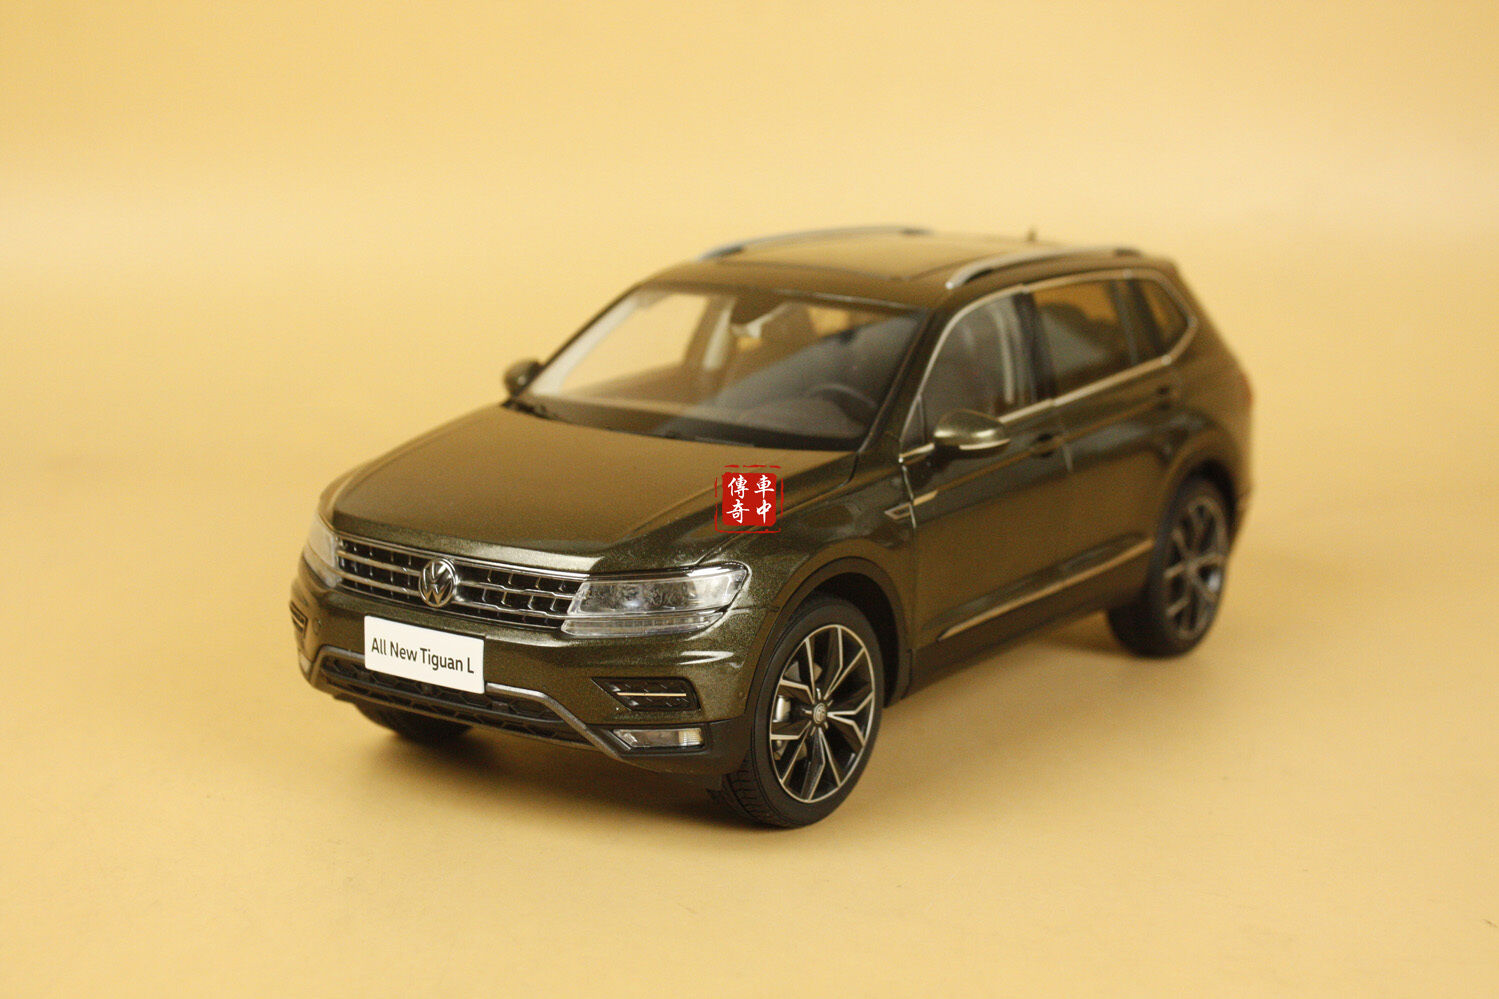 1 18 2017 Volkswagen All new Tiguan L brown color diecast model + gift